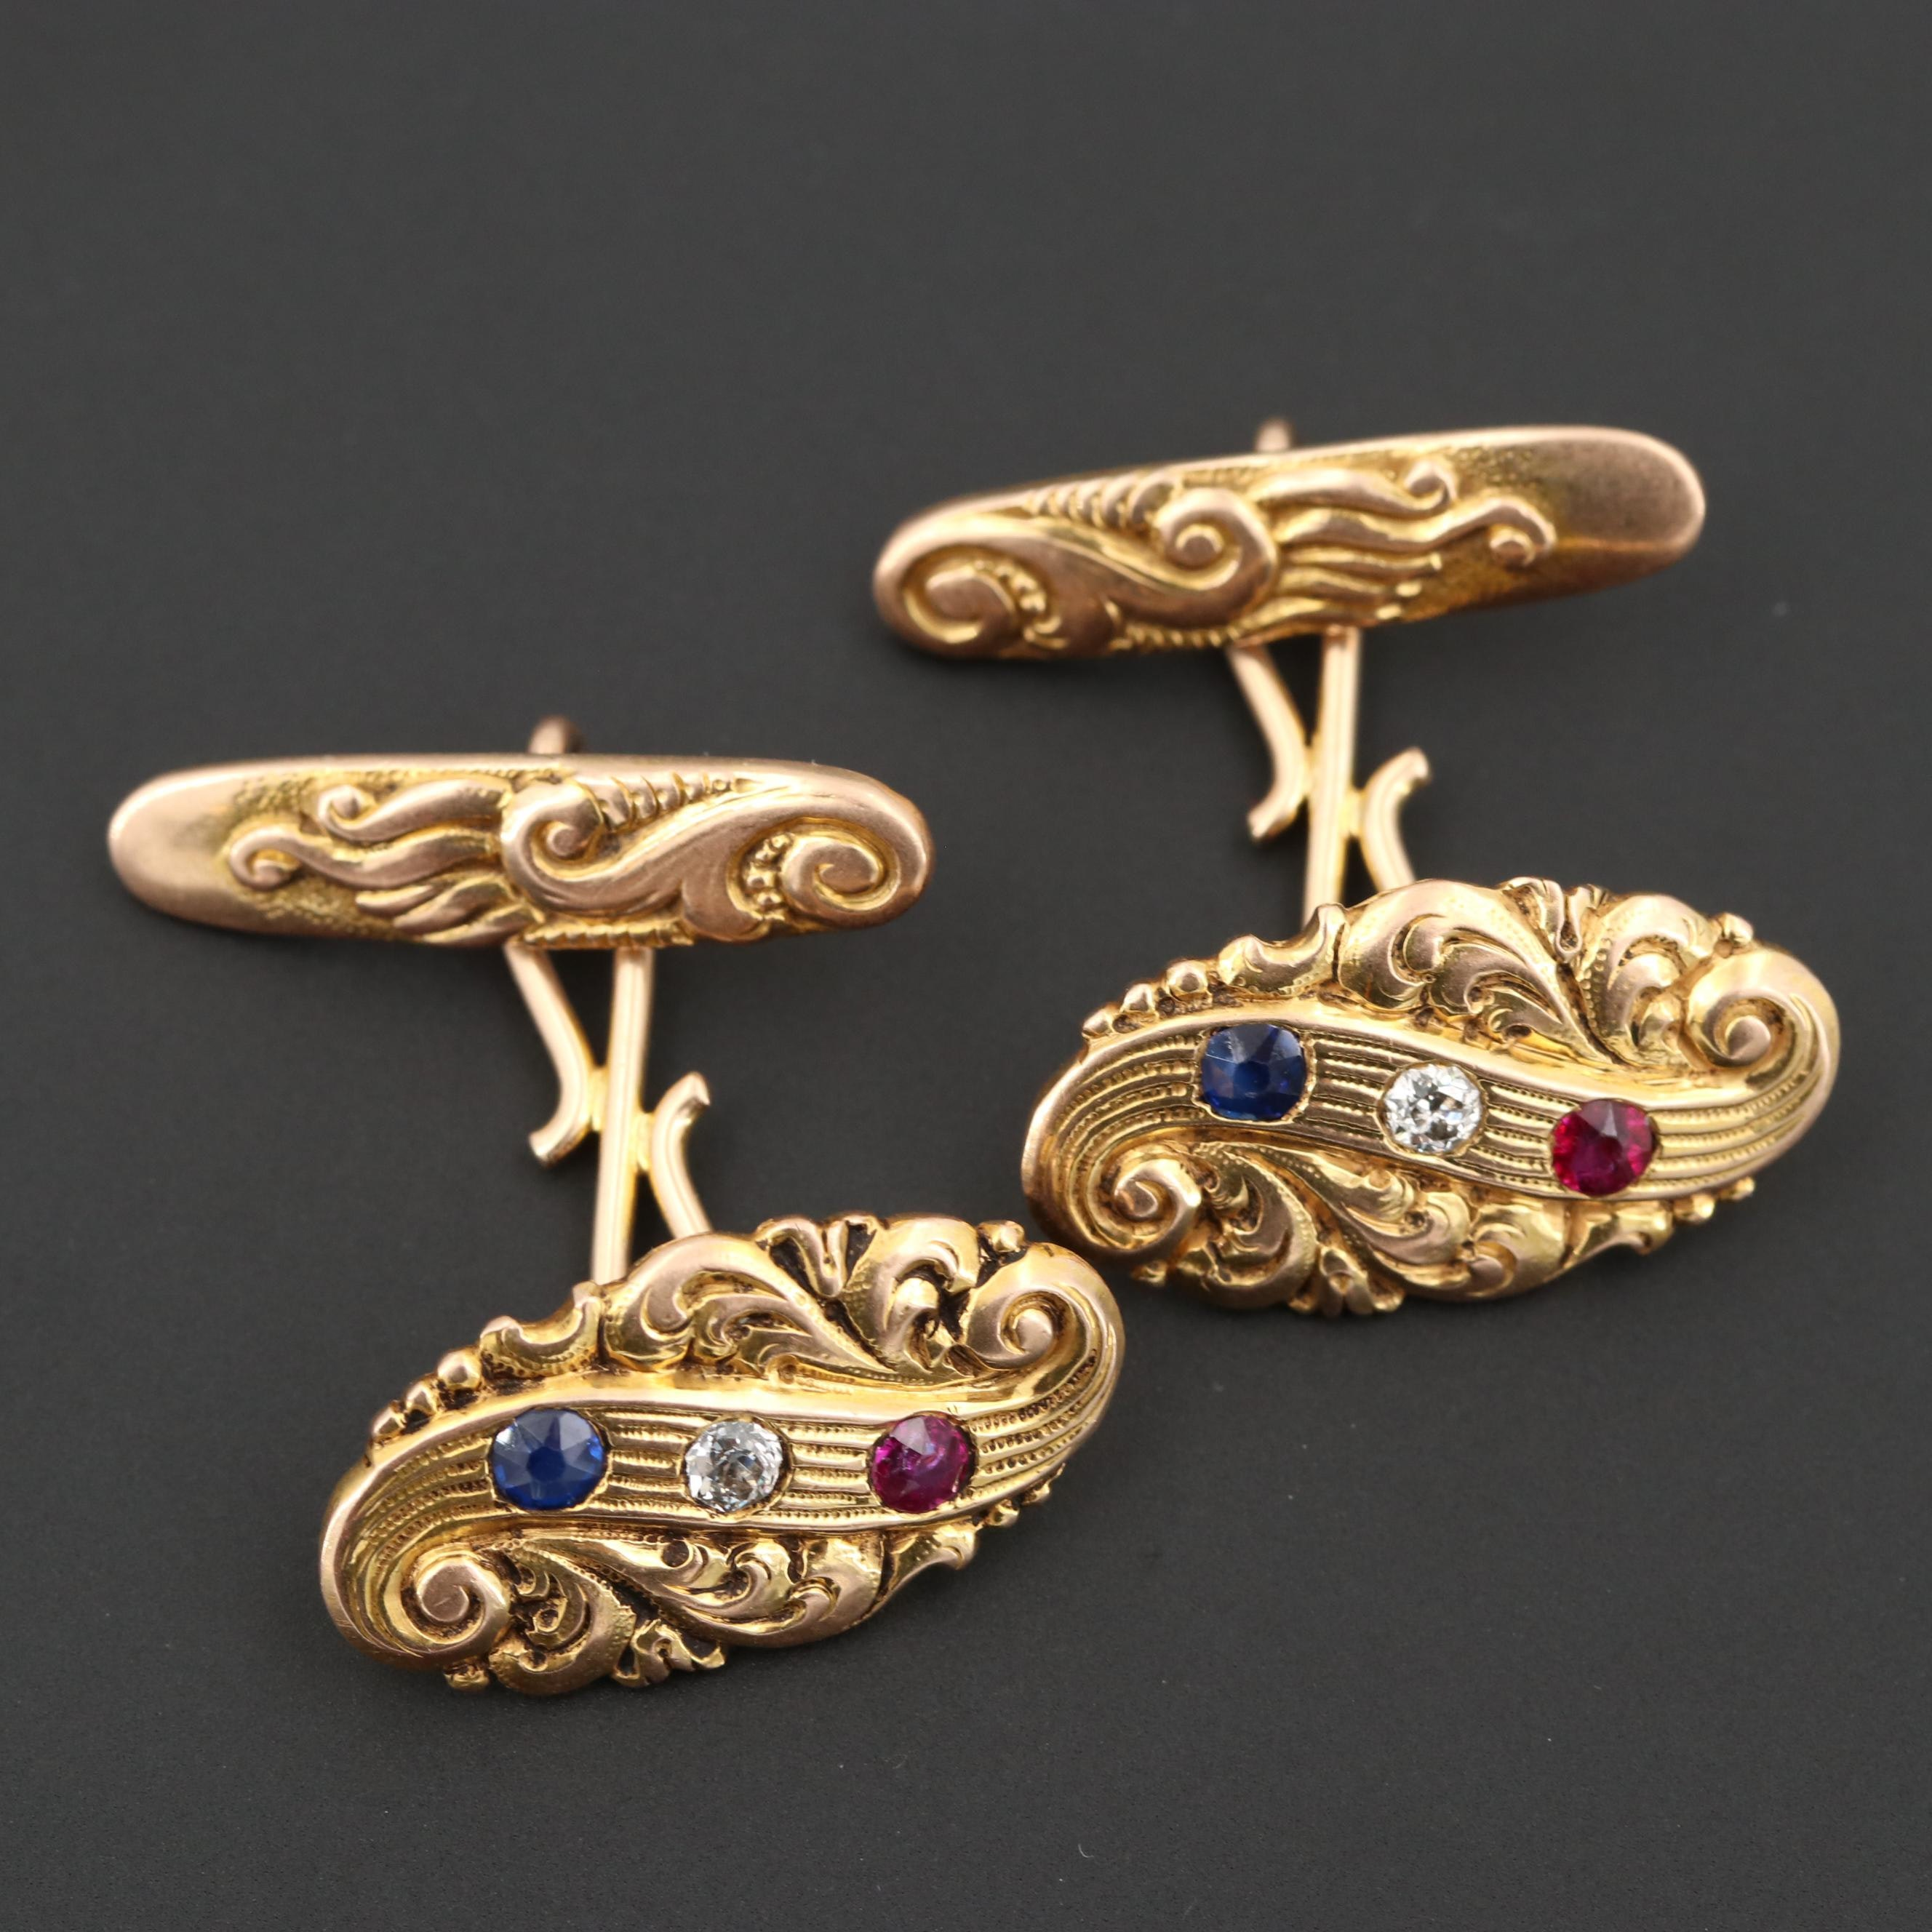 Art Nouveau Shreve & Co. 14K Yellow Gold Ruby, Sapphire and Diamond Cufflinks